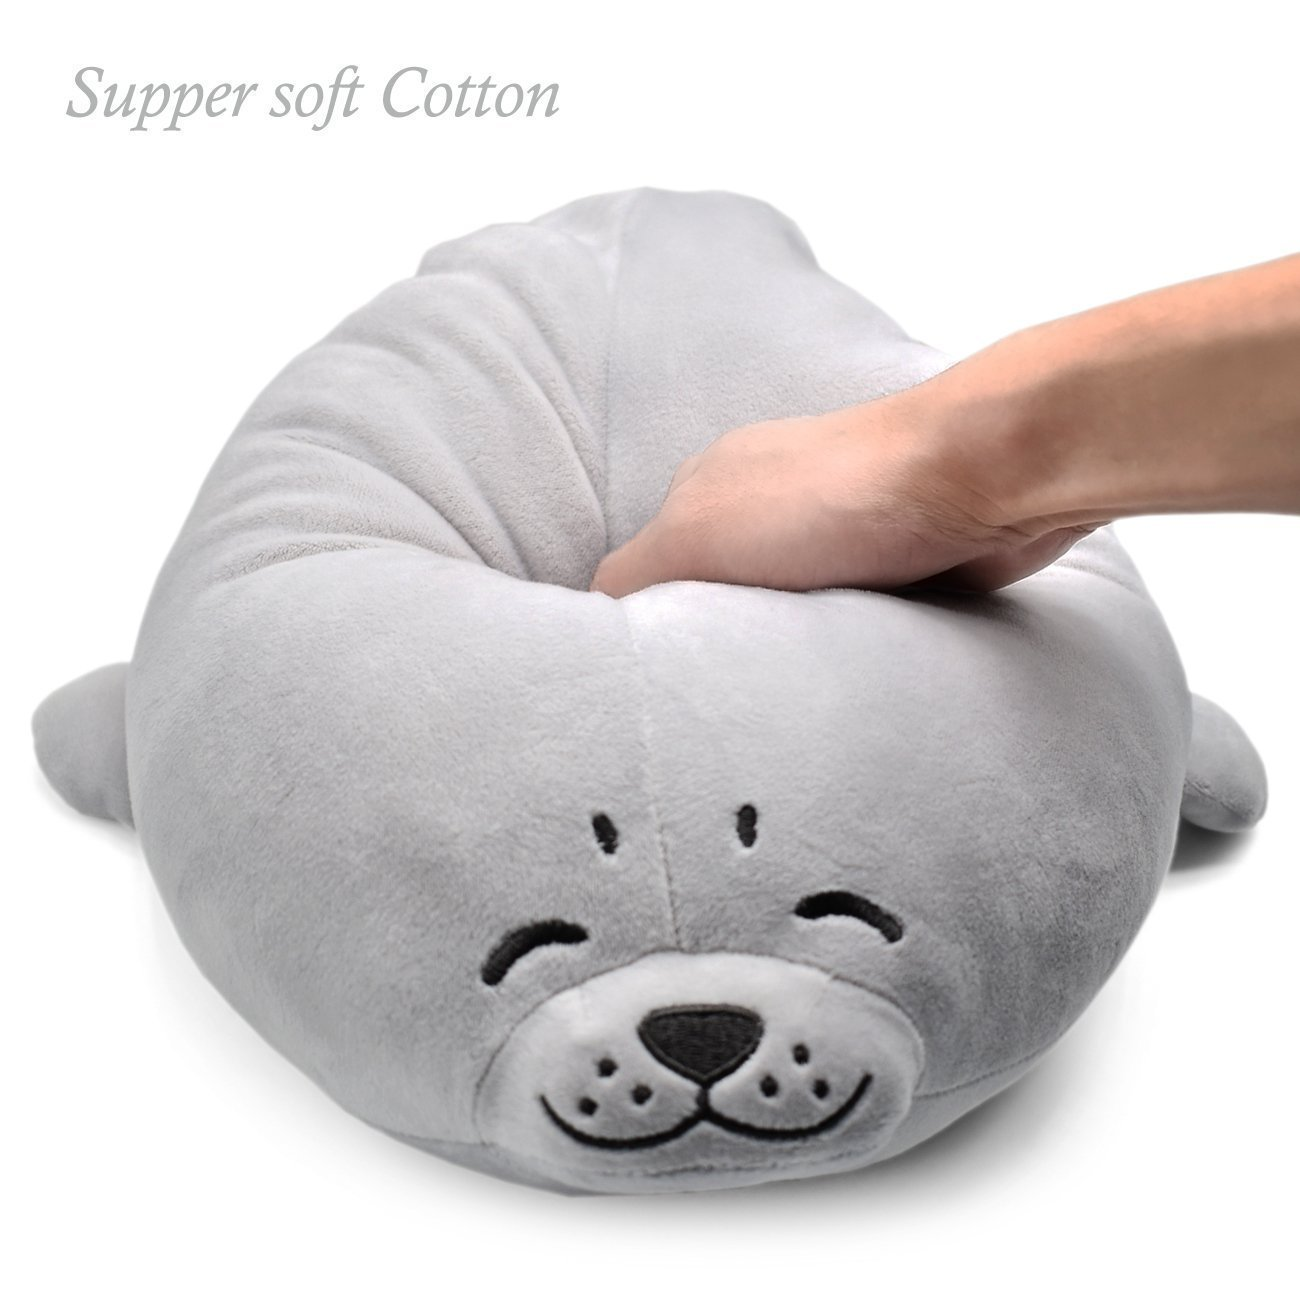 Plush Cute Seal Pillow 16.5 inch/45cm - Stuffed Cotton Soft Animal Toy Grey